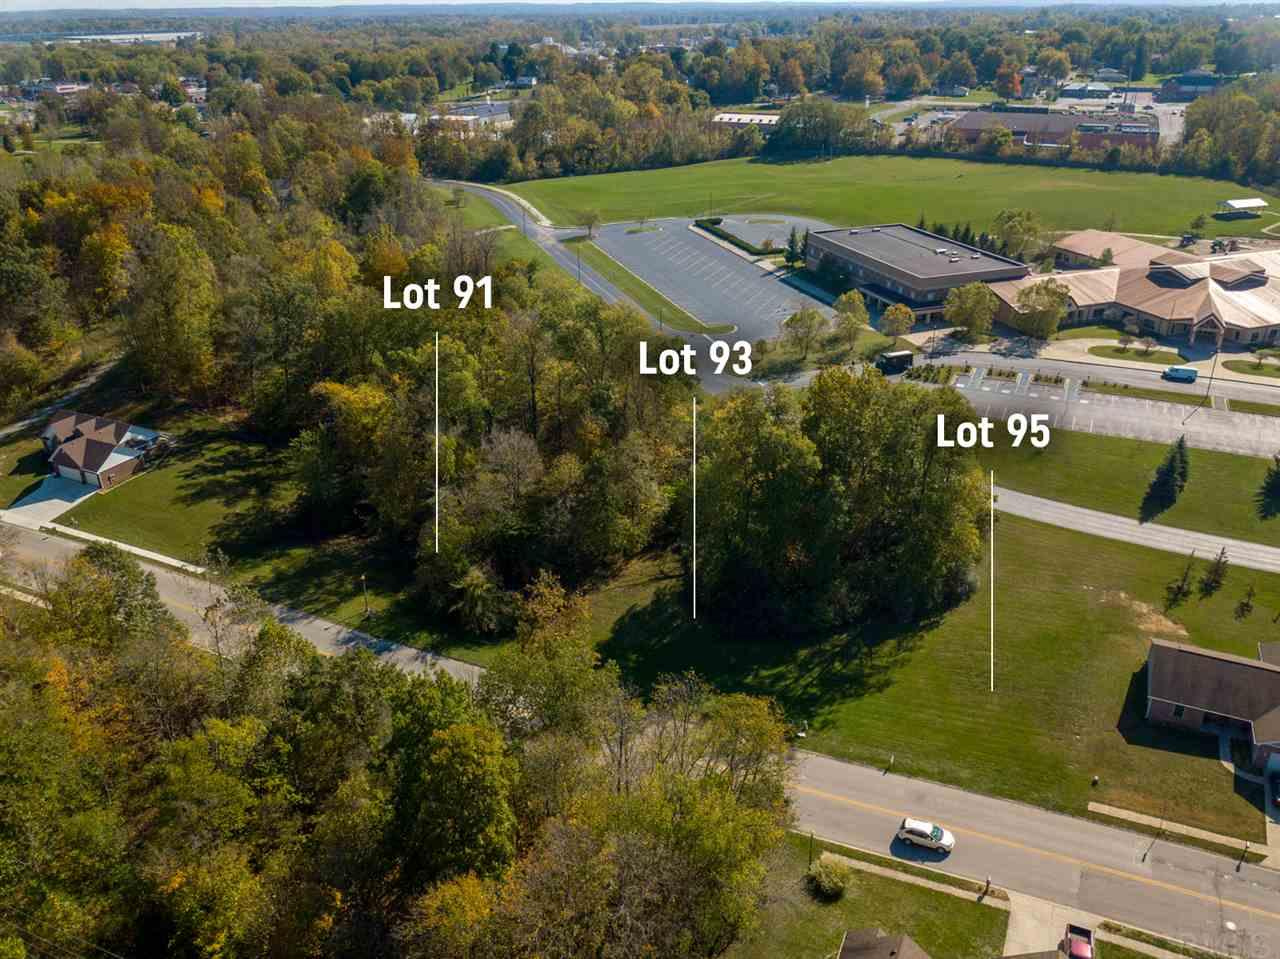 1026 Shadowlawn Dr - Lot 91, Greencastle, IN 46135